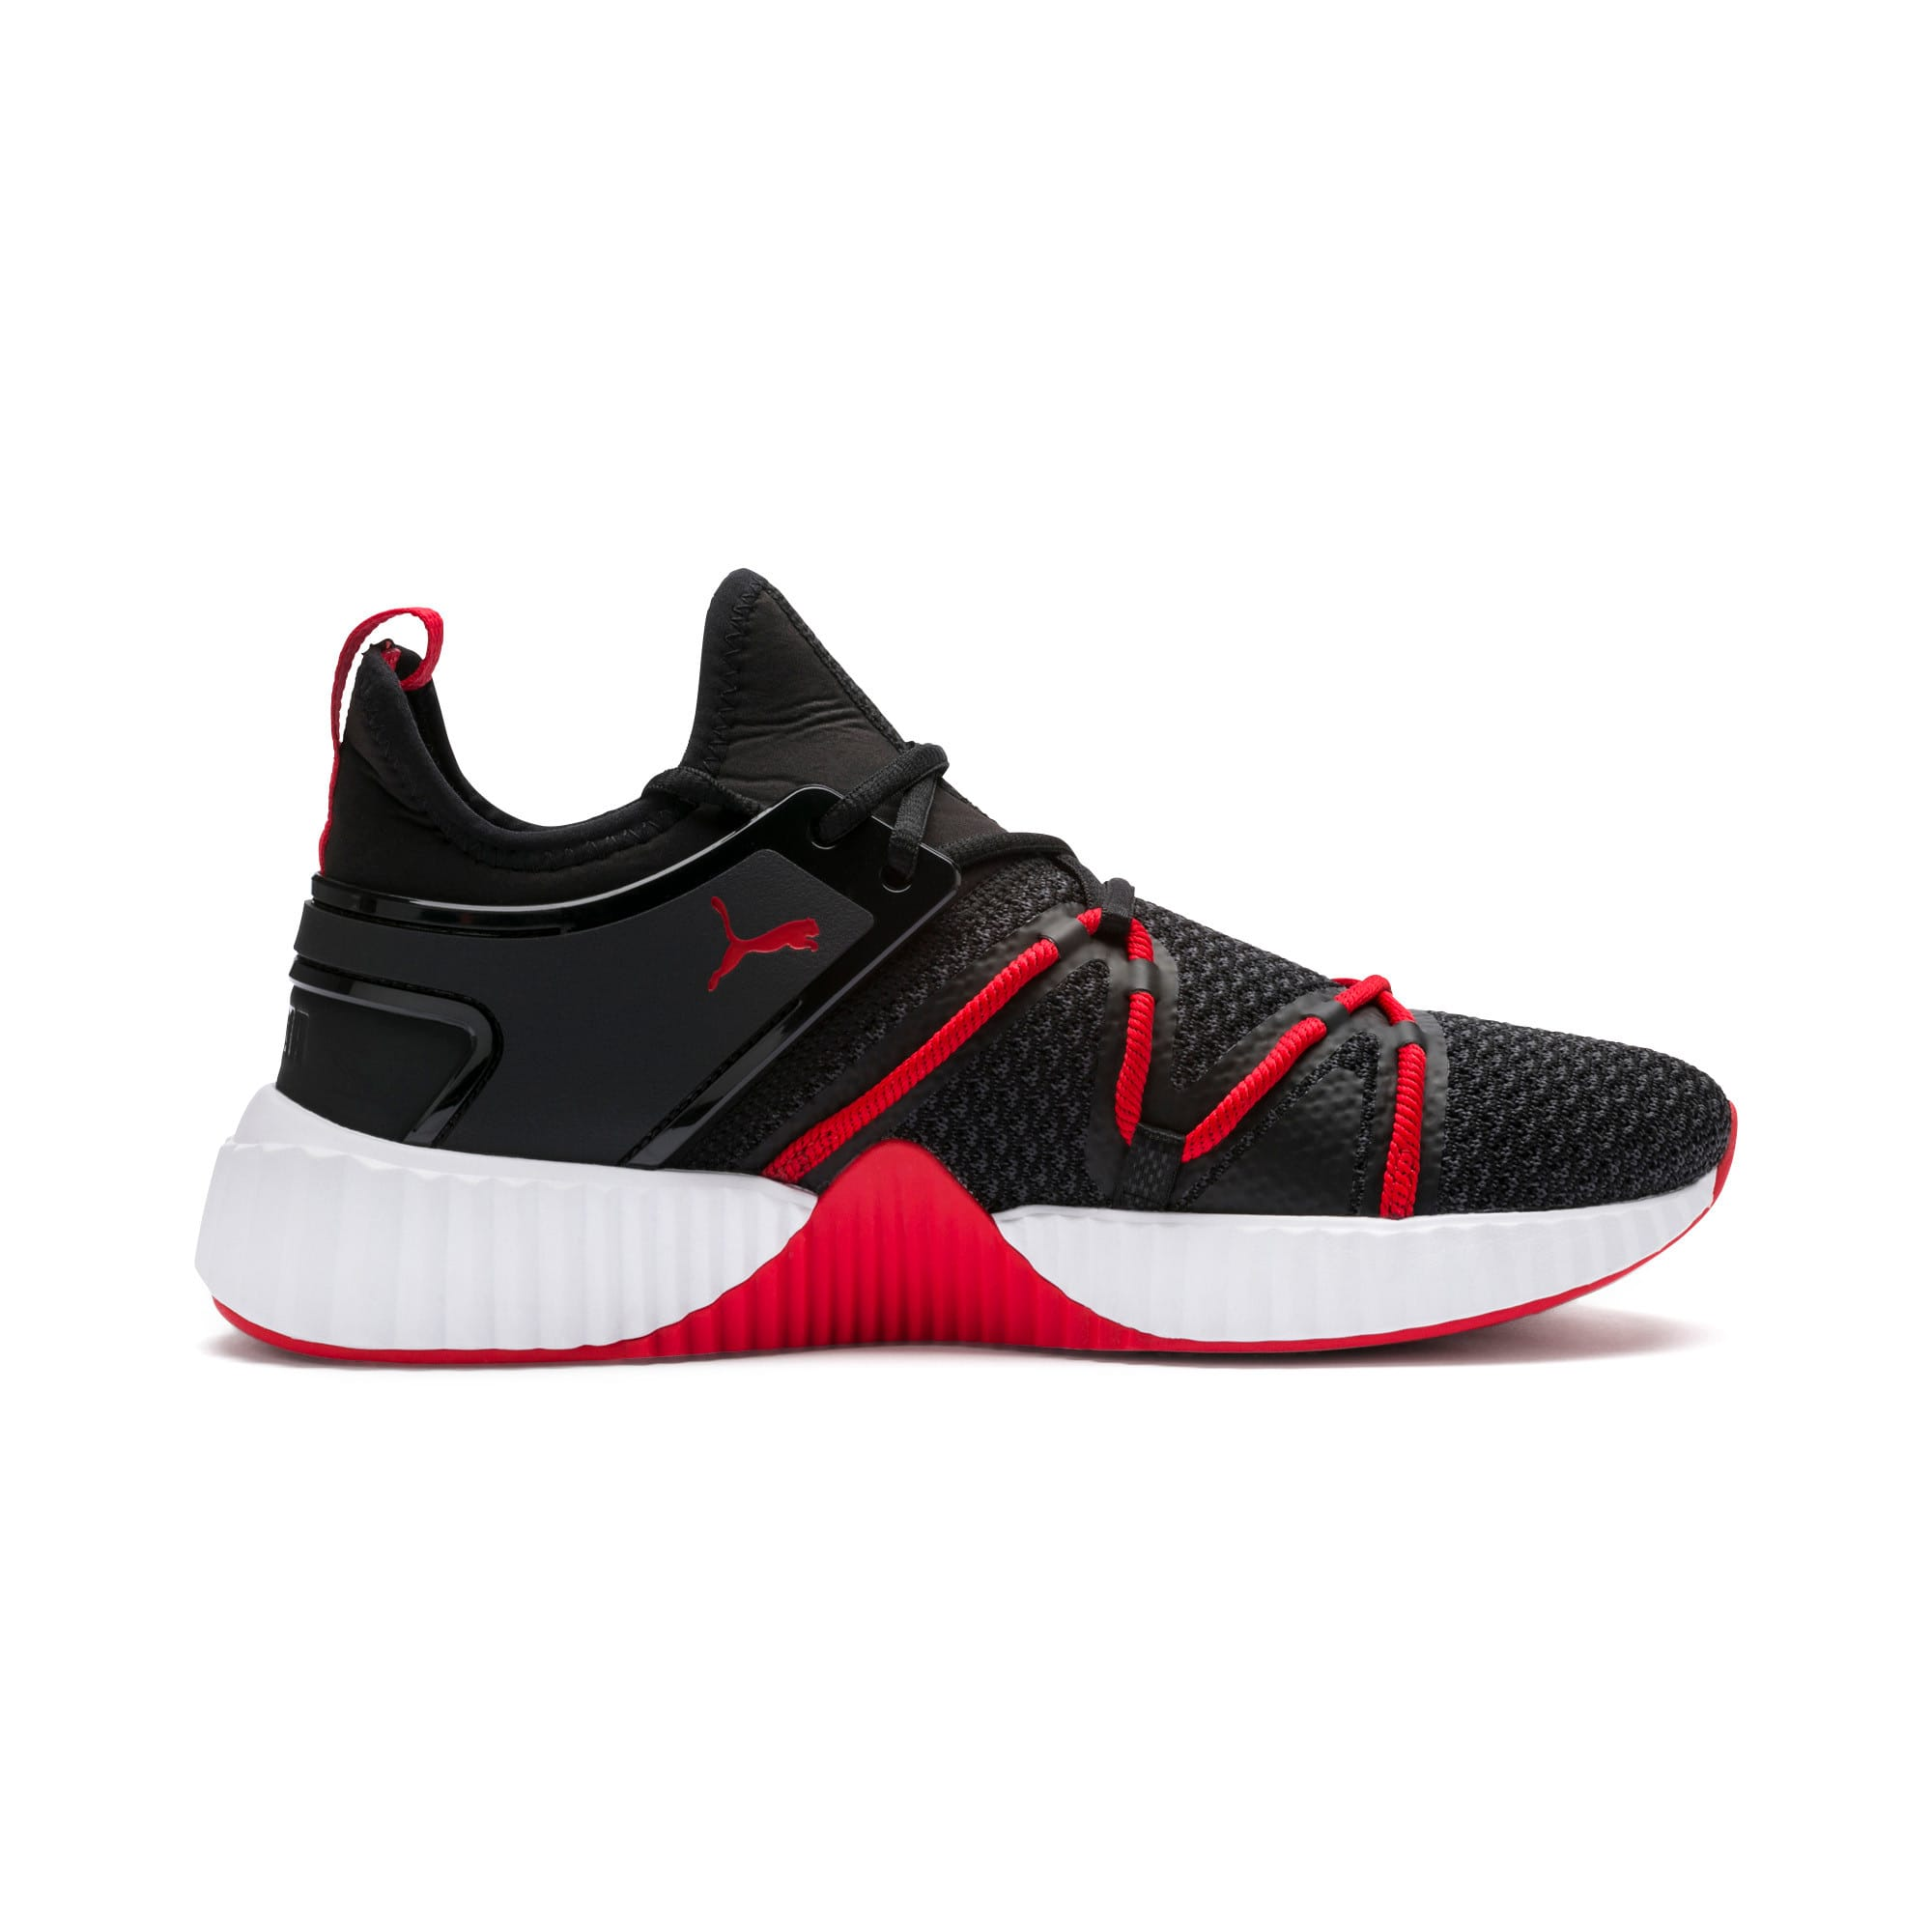 Thumbnail 5 of Defy Deco Men's Training Shoes, Puma Black-High Risk Red, medium